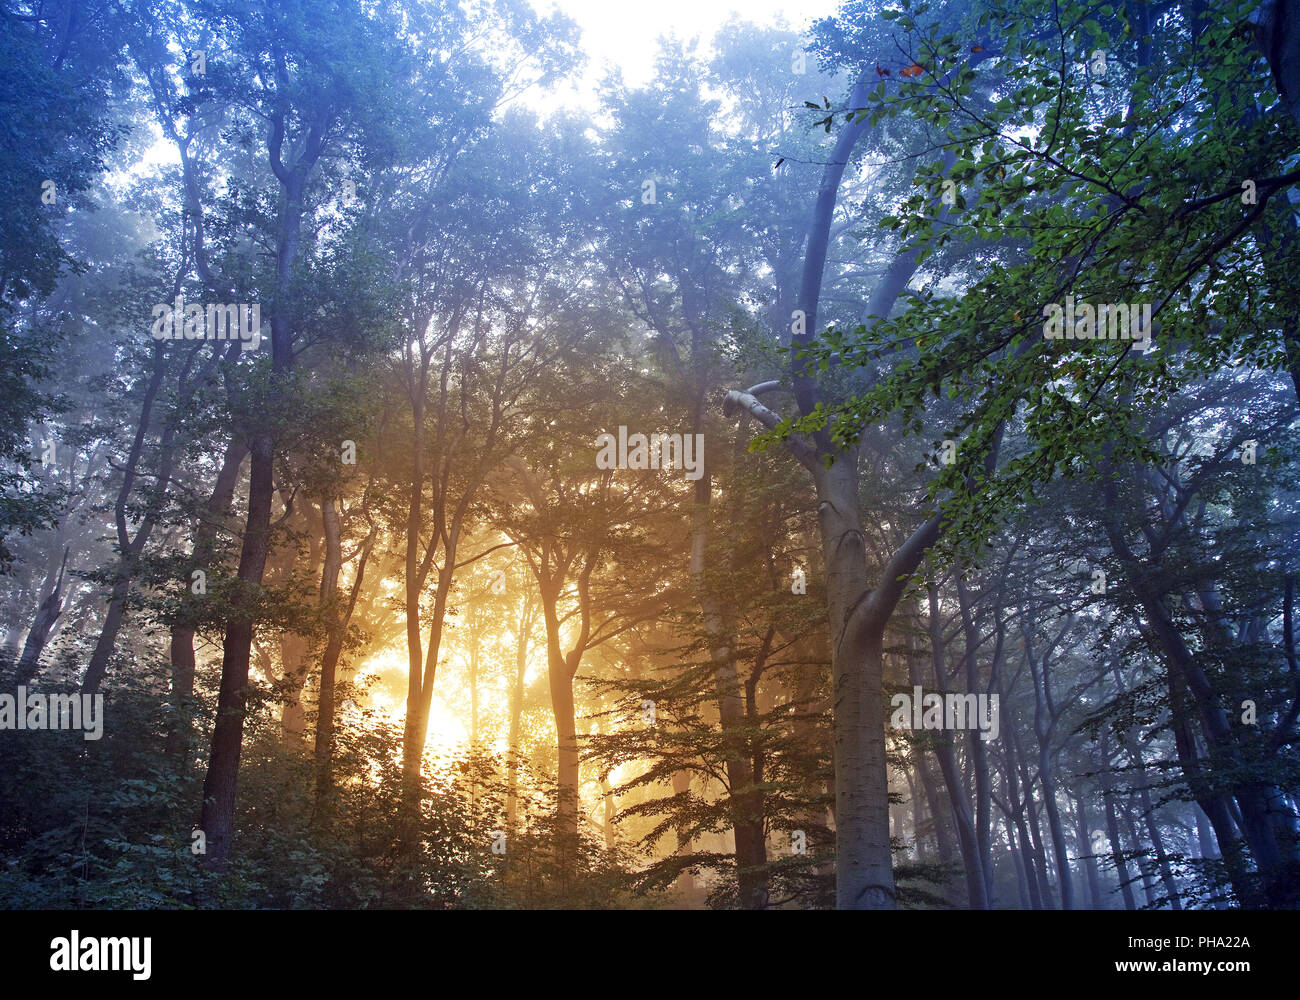 sunrise in misty forest, Witten, Ruhr Area, North Rhine-Westphalia, Germany - Stock Image